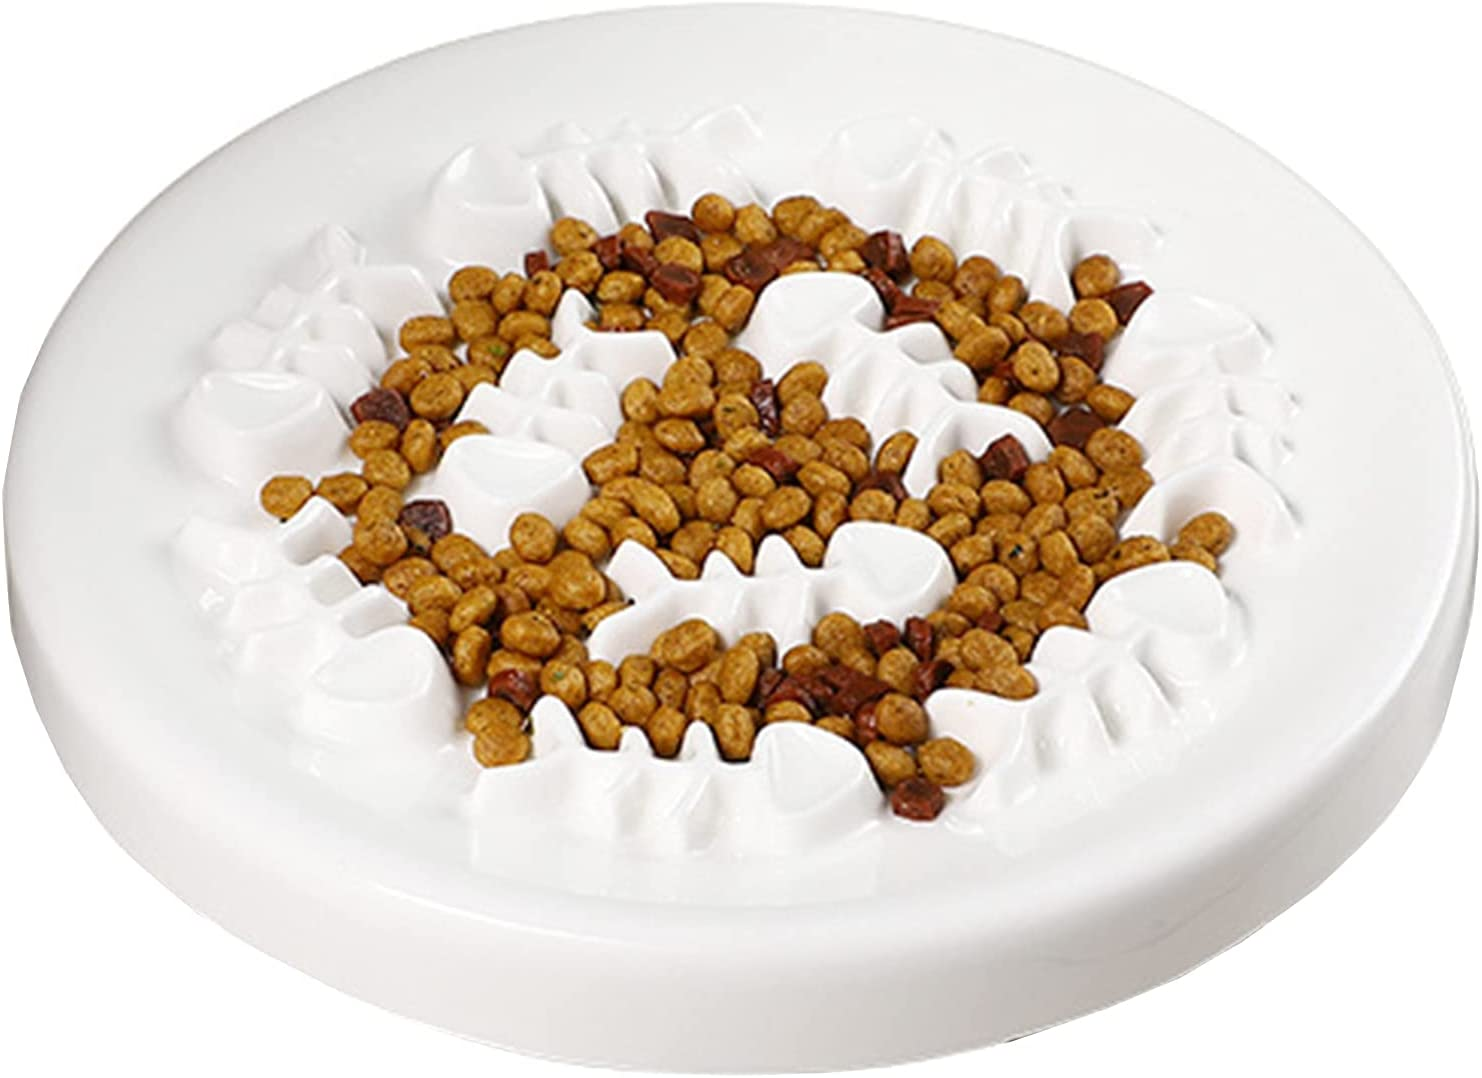 VISICASA Ceramic 67% OFF of fixed price Cats Bowls,Ceramic Tulsa Mall Dogs Feeder Cat Bowls Slow